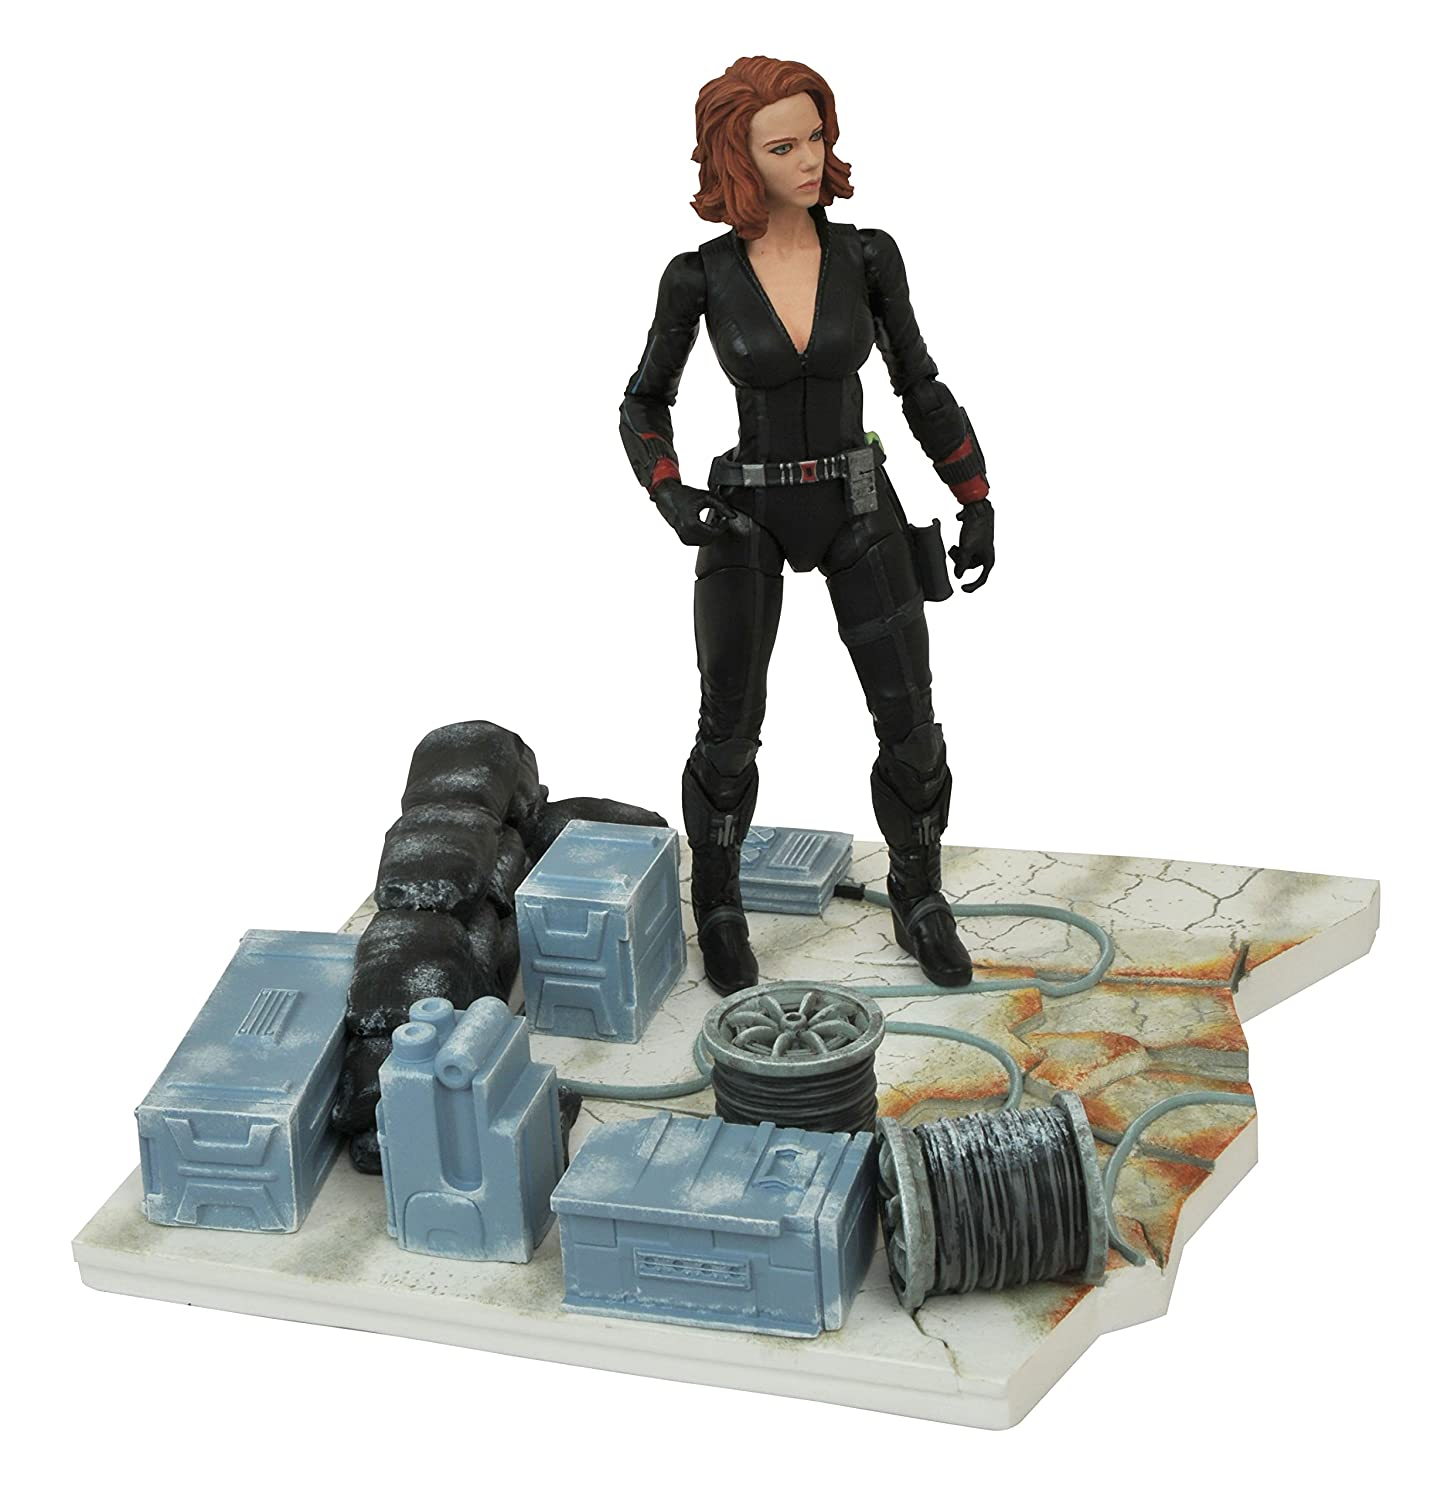 Diamond Select Toys Marvel Select Avengers Age of Ultron Black Widow Action Figure